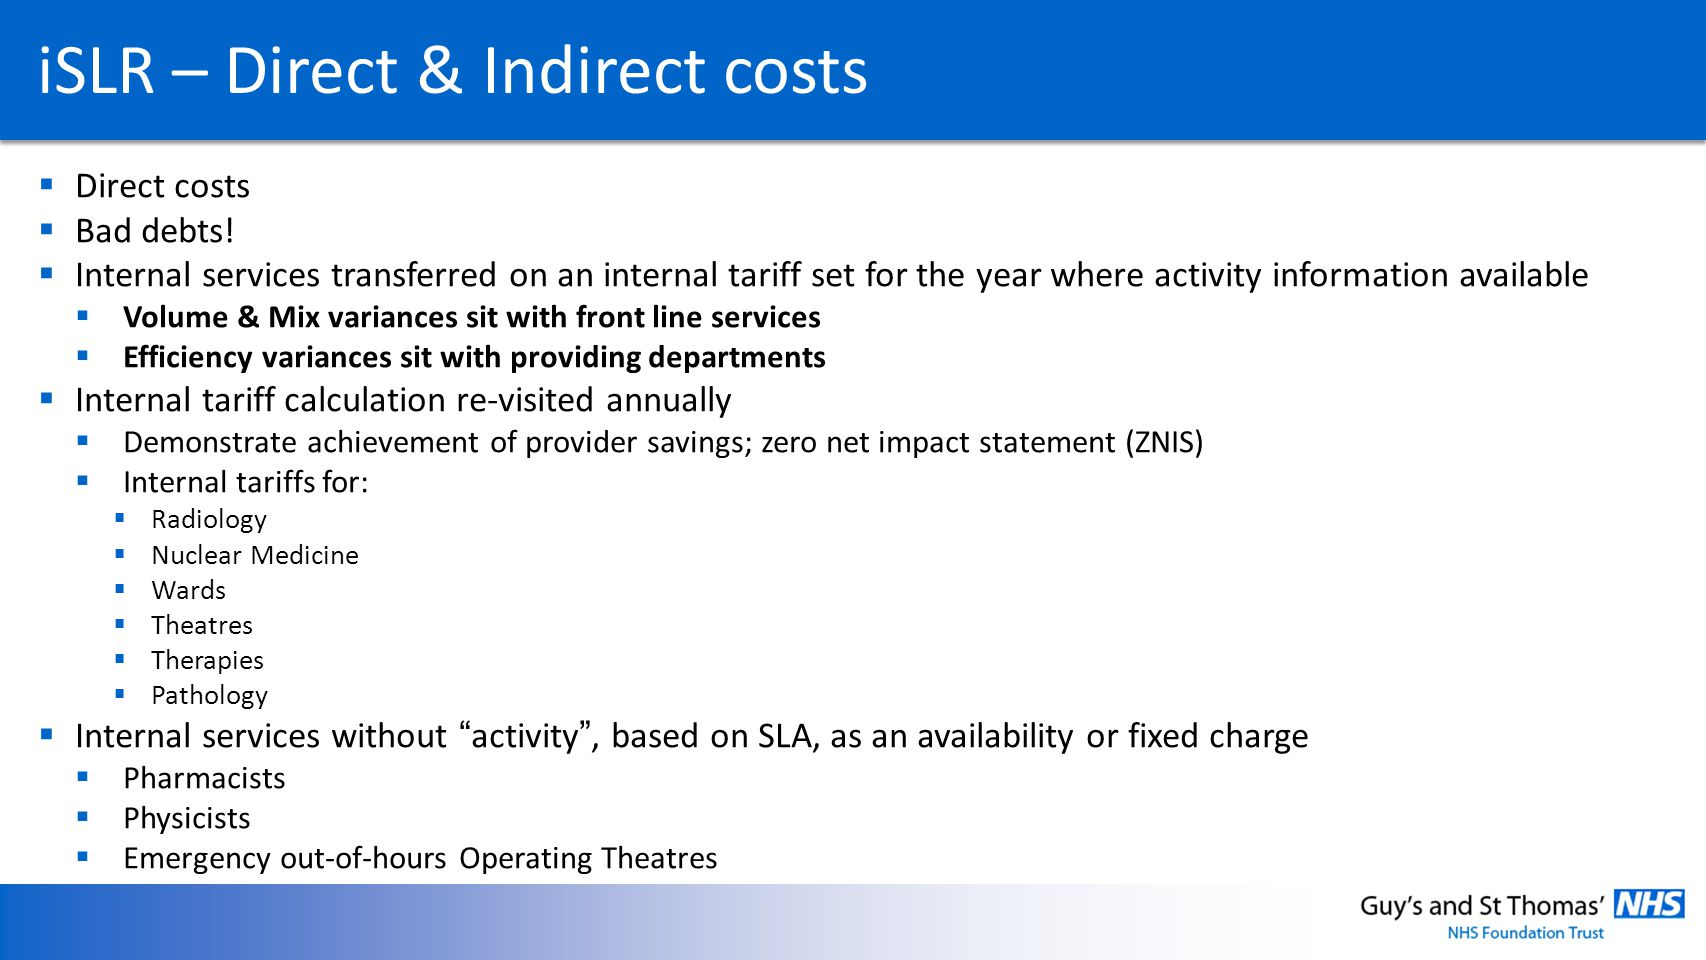 iSLR – Direct & Indirect costs